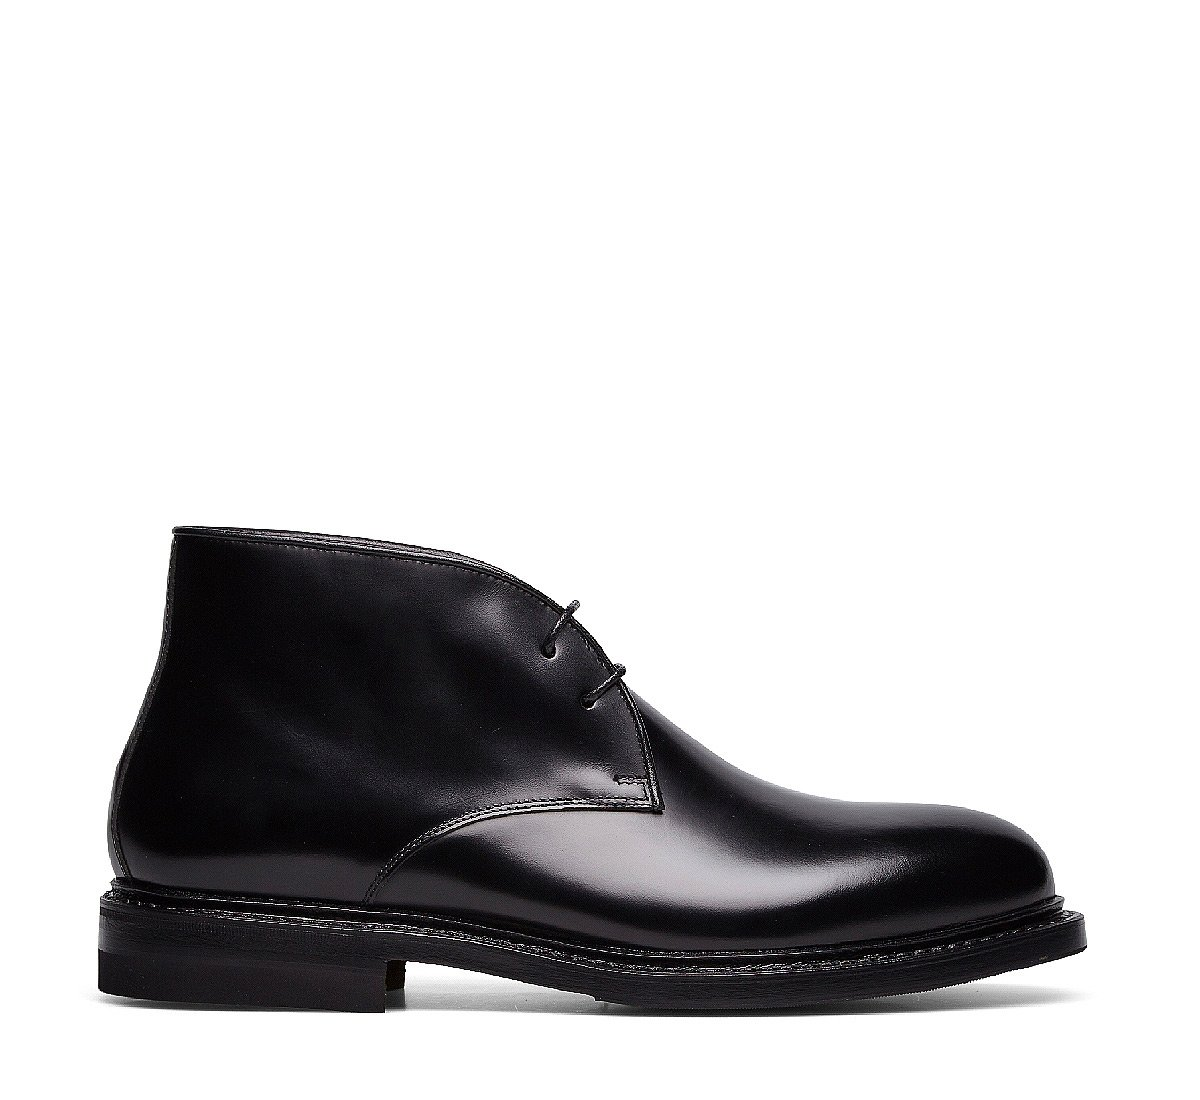 Two-eyelet calfskin ankle boots